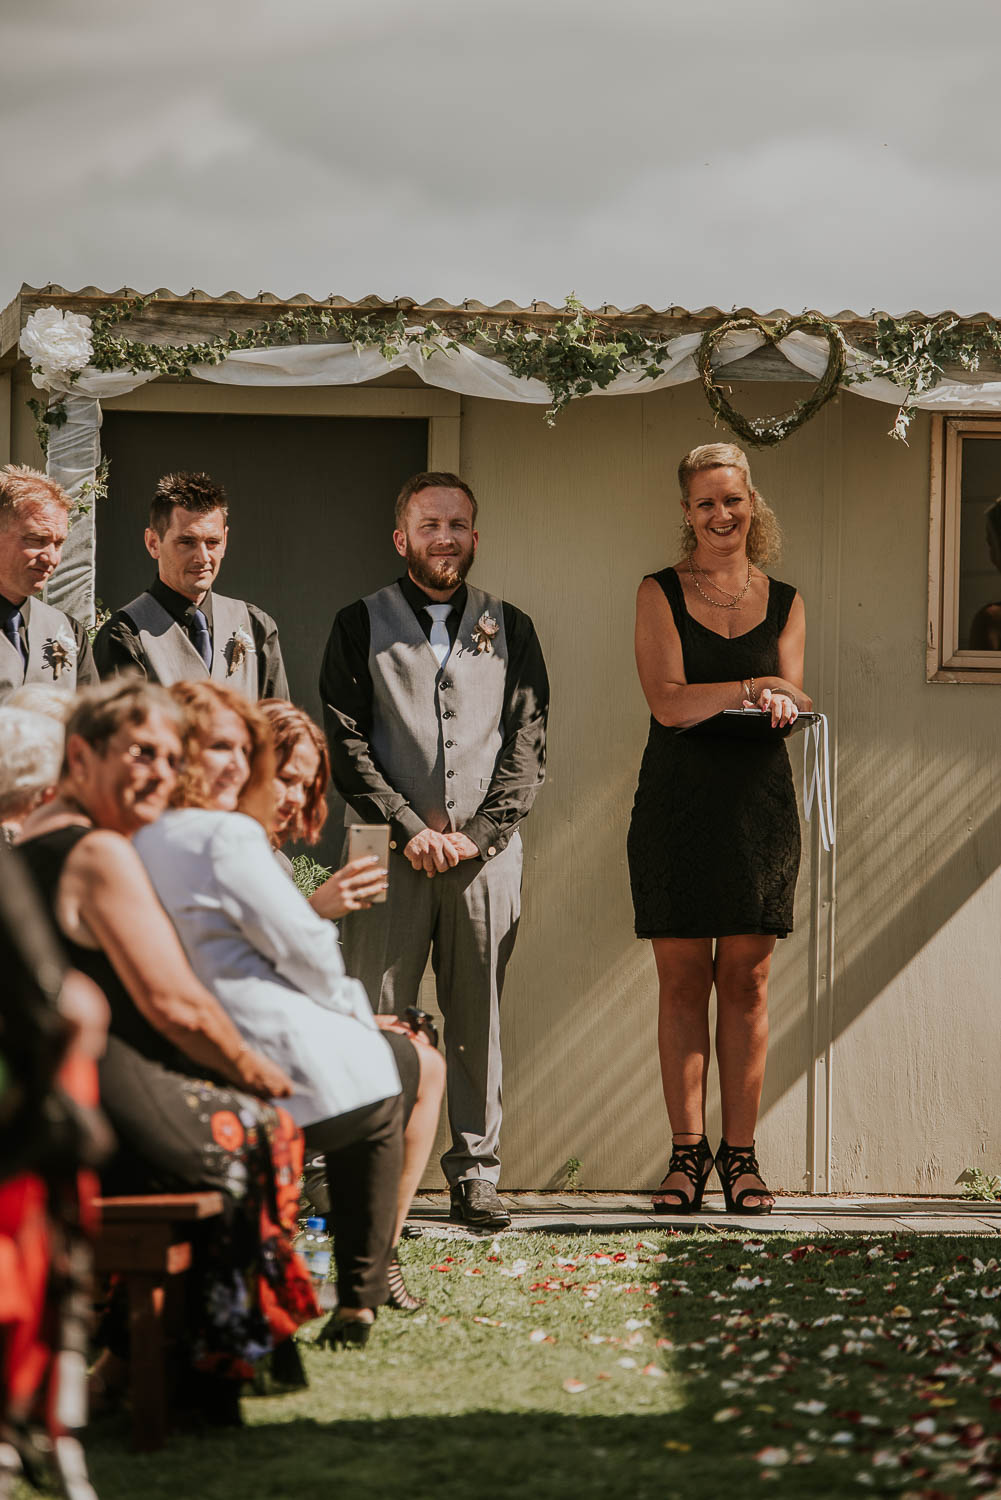 Auckland-Wedding-David-Alysha-Rustic-Farm-65